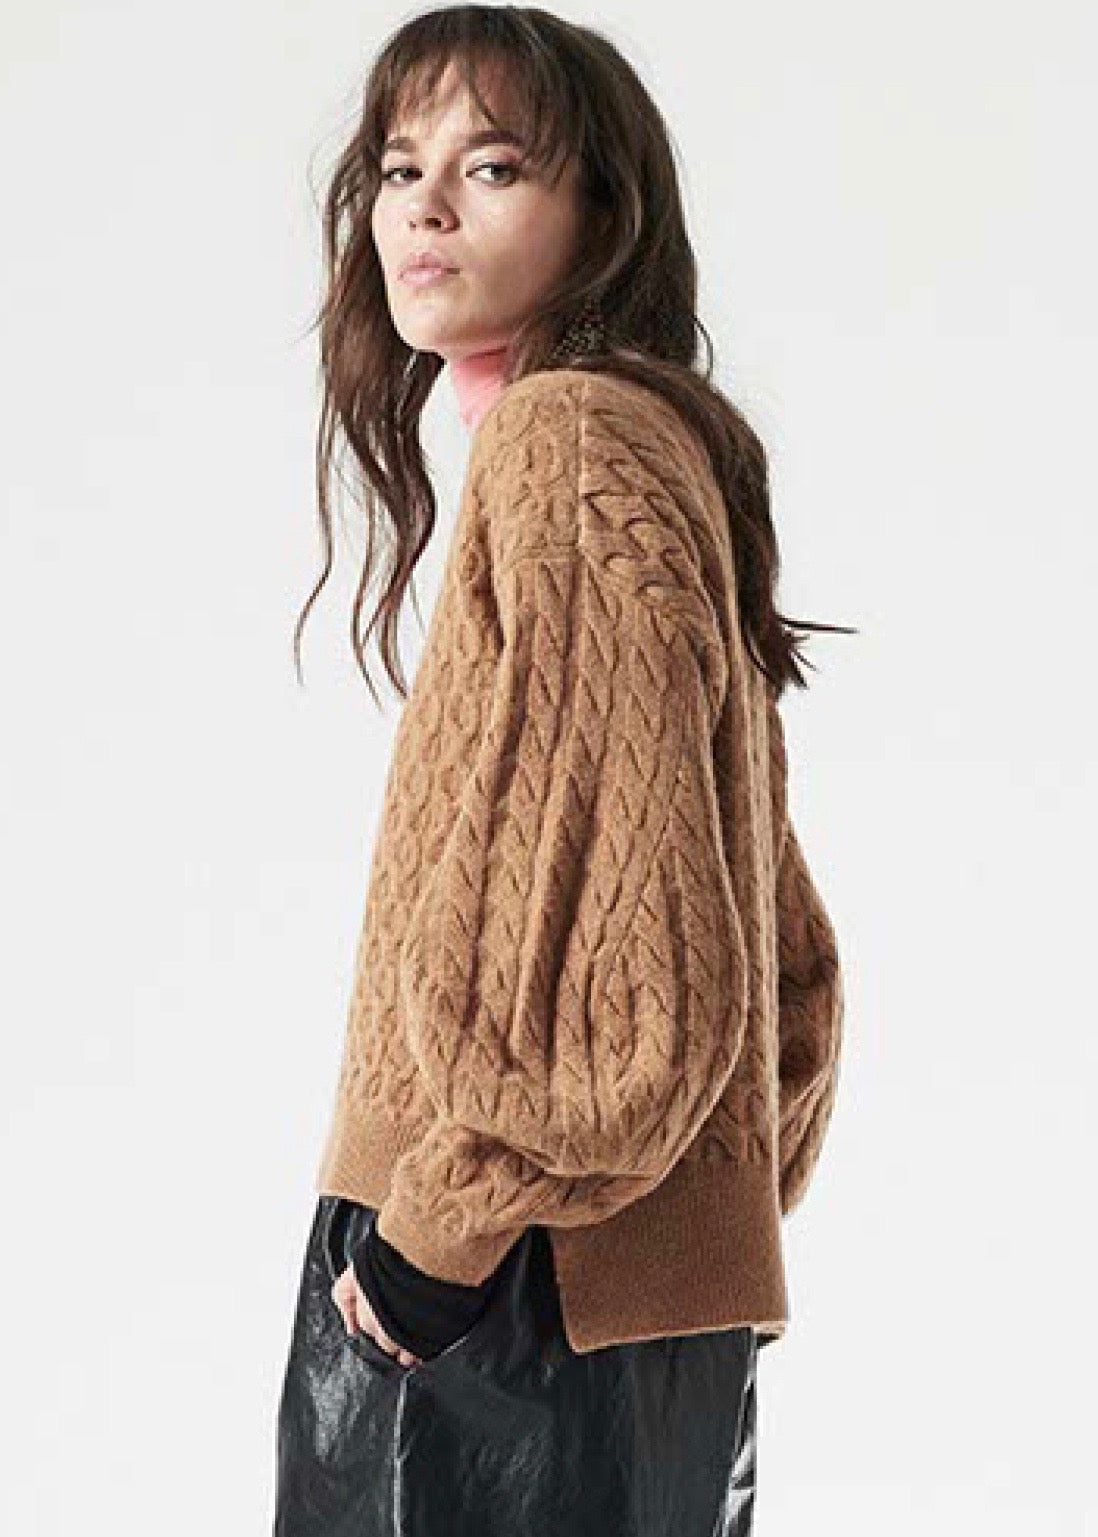 Nude v neck sweater in camel